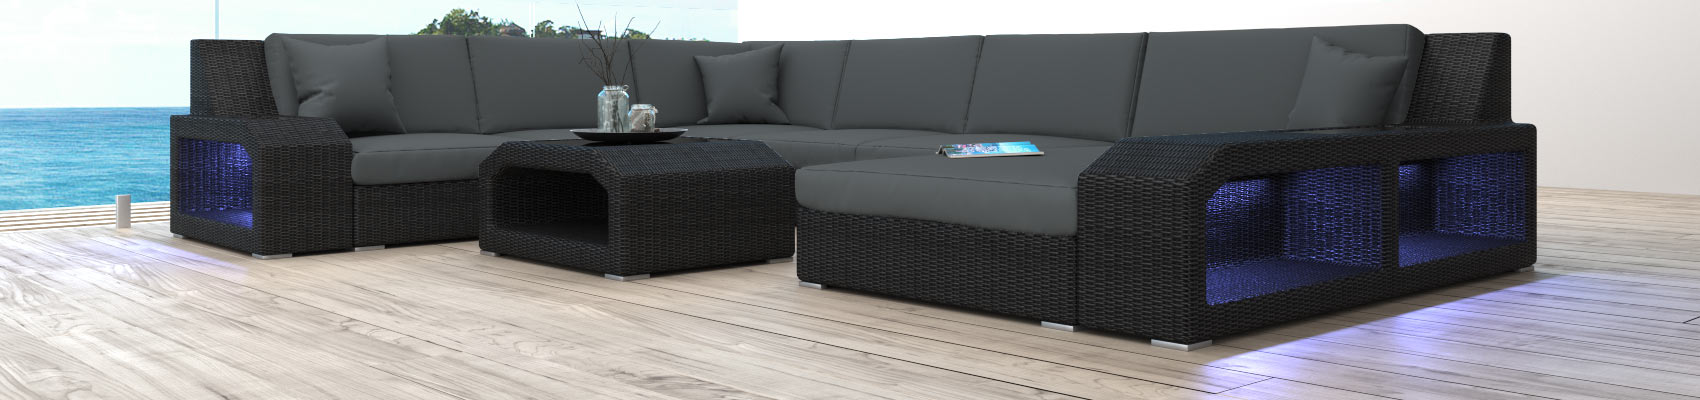 garten loungem bel und rattan lounge m bel sofa dreams. Black Bedroom Furniture Sets. Home Design Ideas